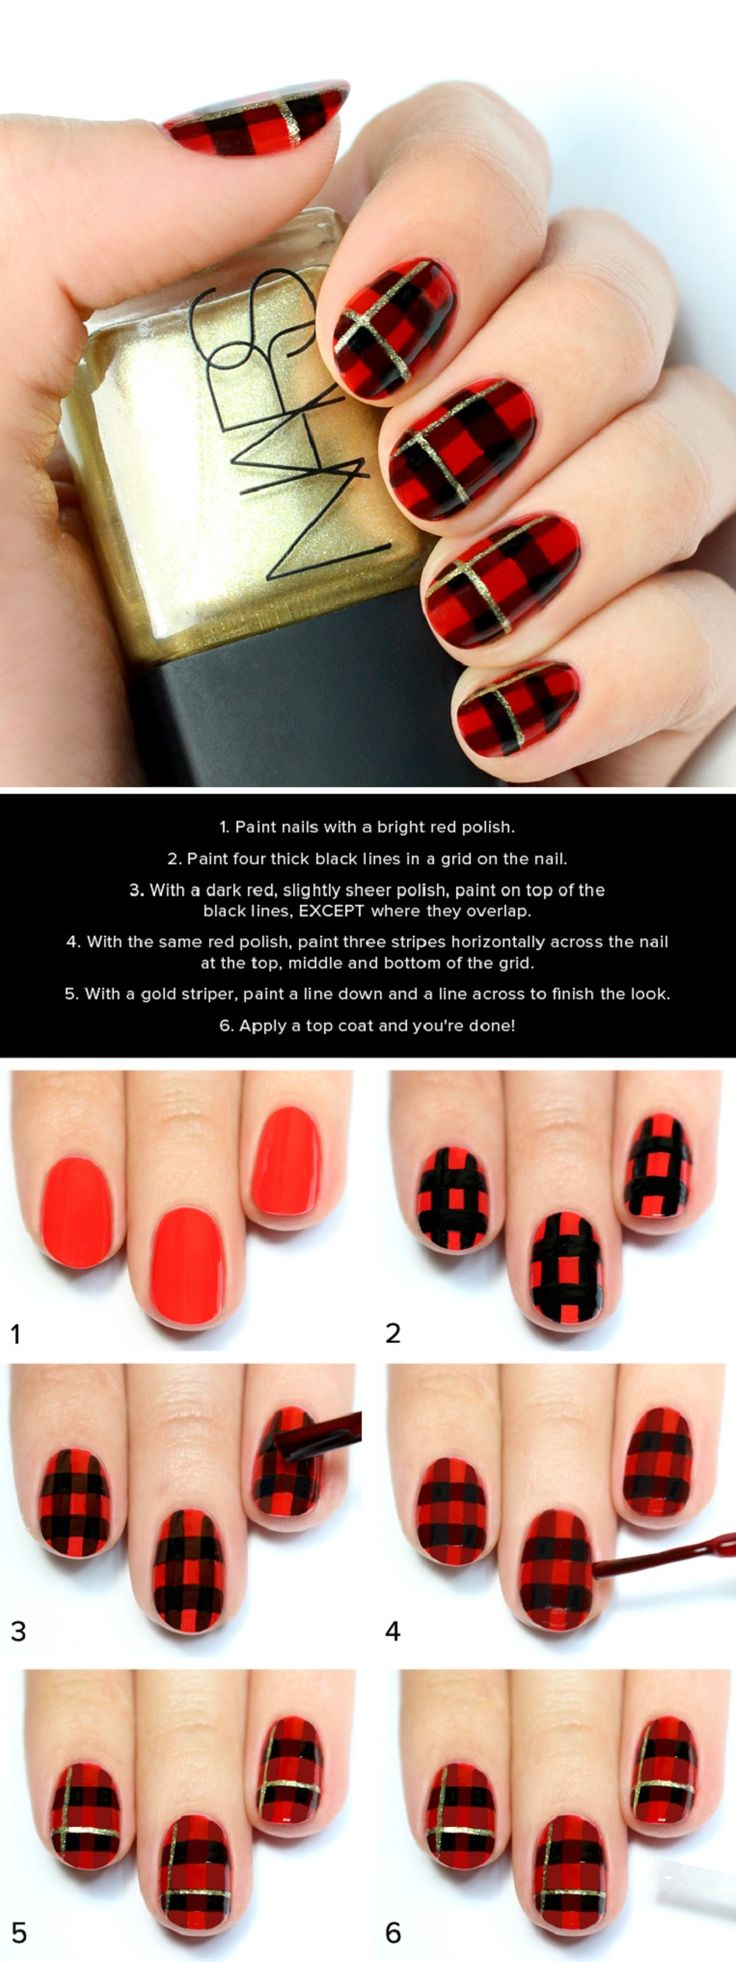 Christmas Top Ten Best Nail Art Designs Tutorials 2017-2018